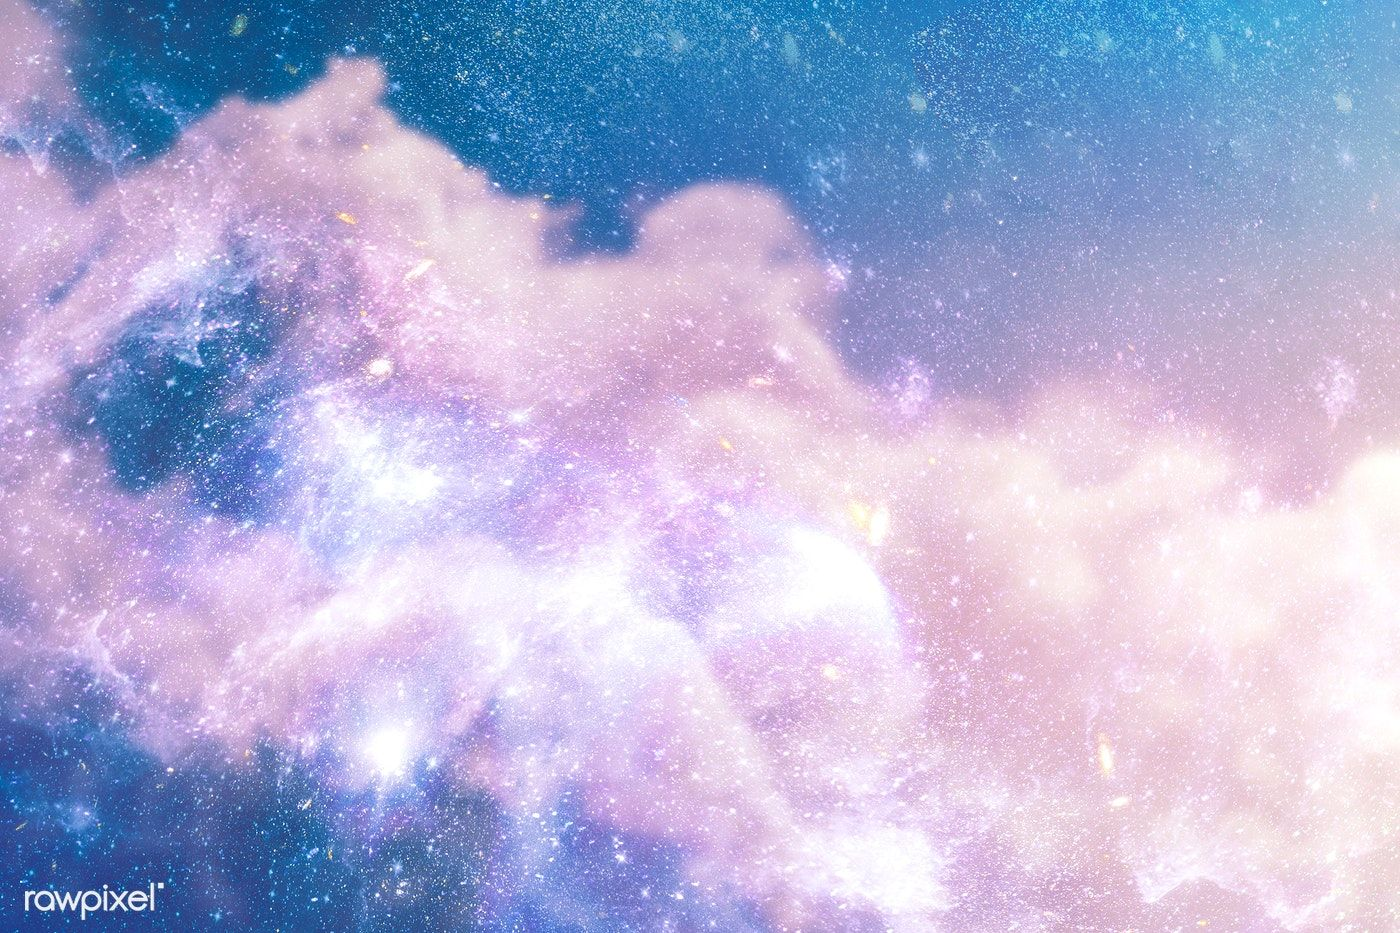 Download Premium Image Of Galaxy In Space Textured Background 2331721 Galaxy Images Textured Background Galaxy Background